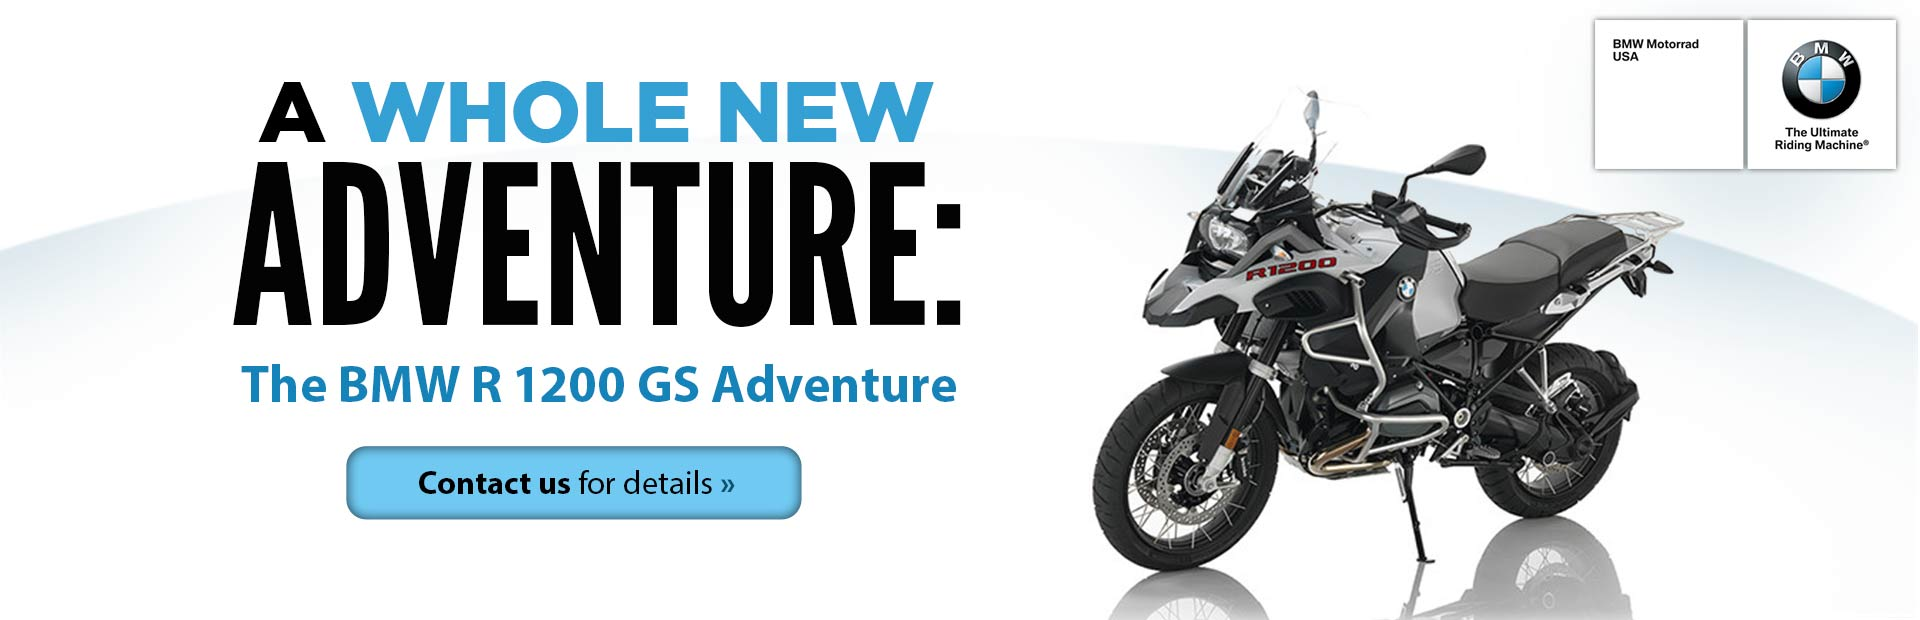 The BMW R 1200 GS Adventure: Contact us for details.